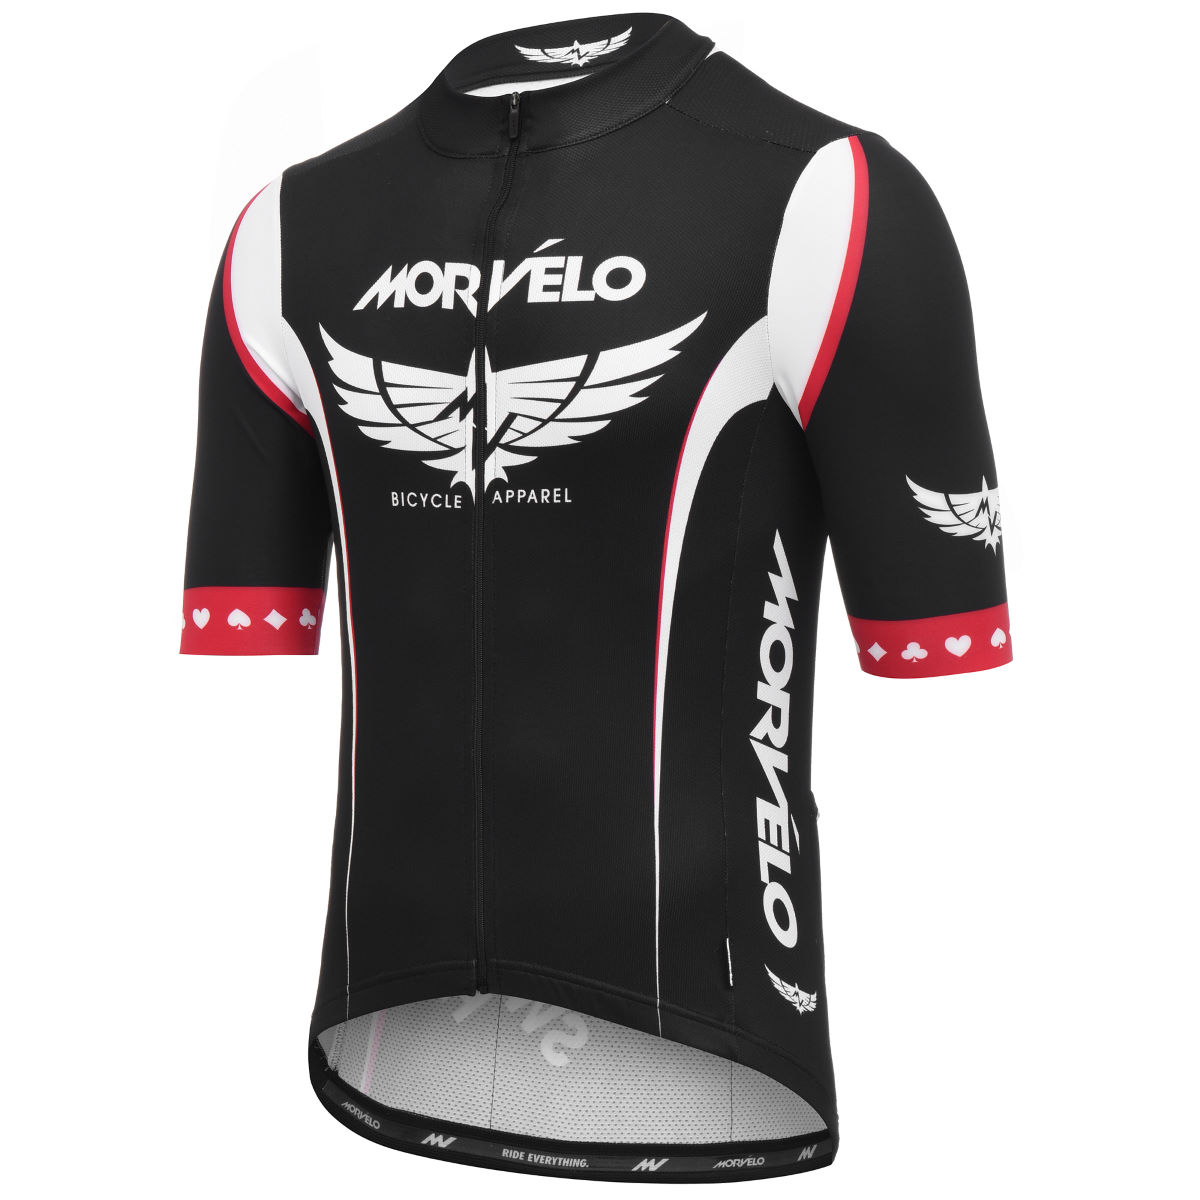 Maillot Morvélo 10 Year Celebration Unity - Maillots